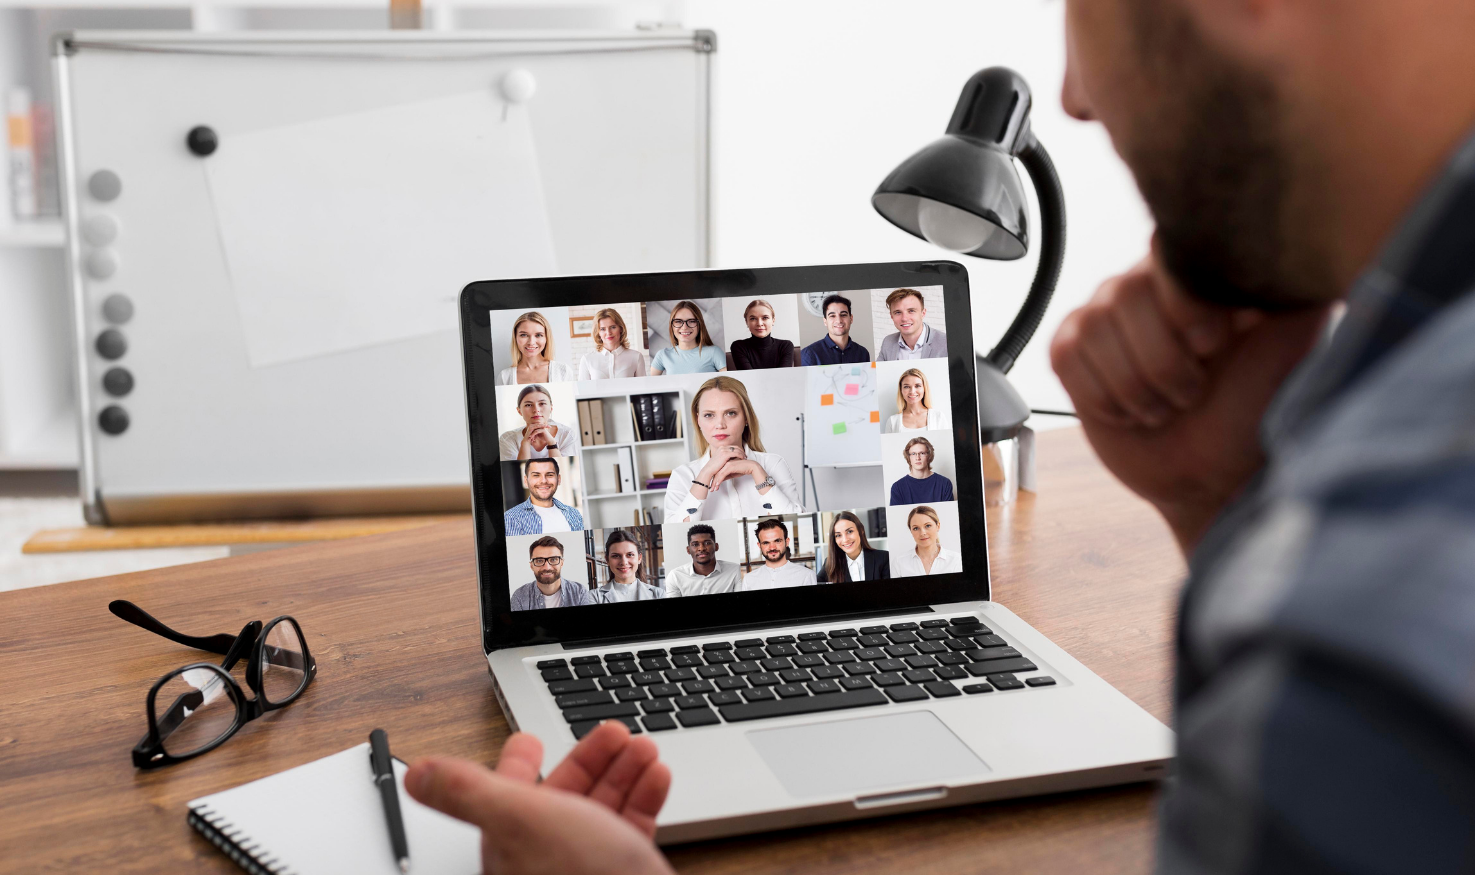 Collaborating with teammates remotely